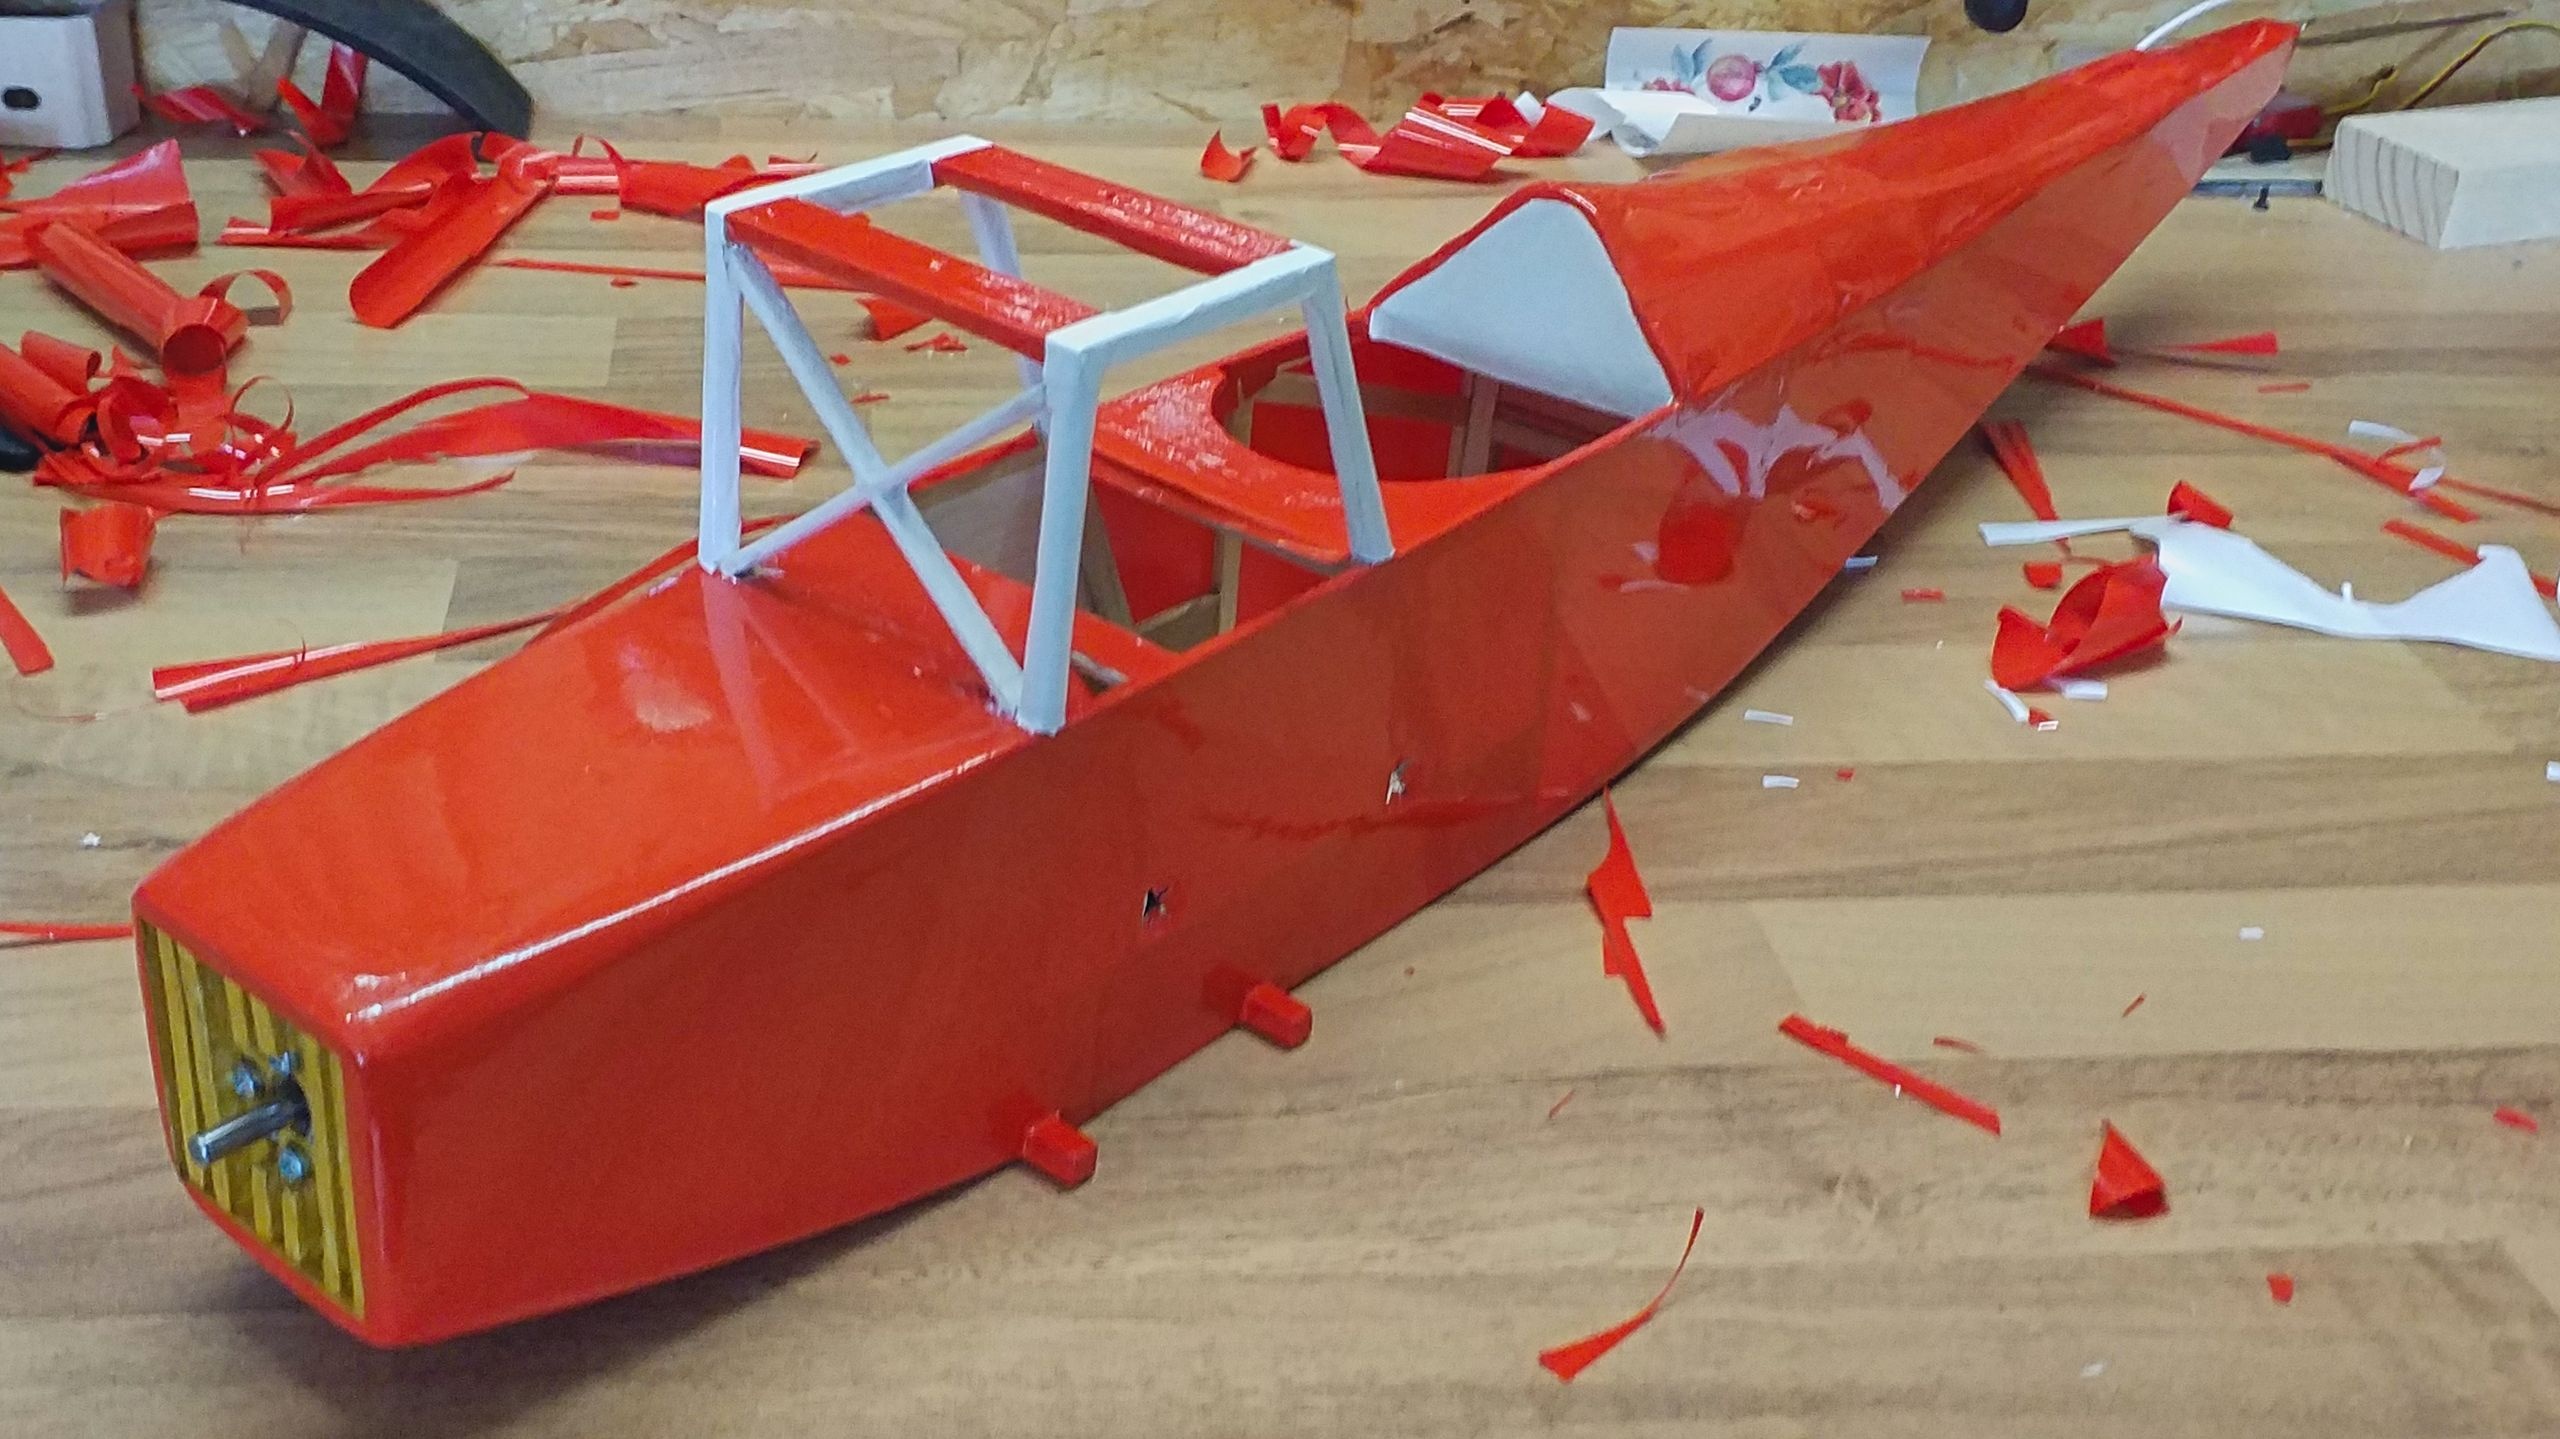 The upper wing's mounting, the undercarriage's mounting and the seatback are finished.